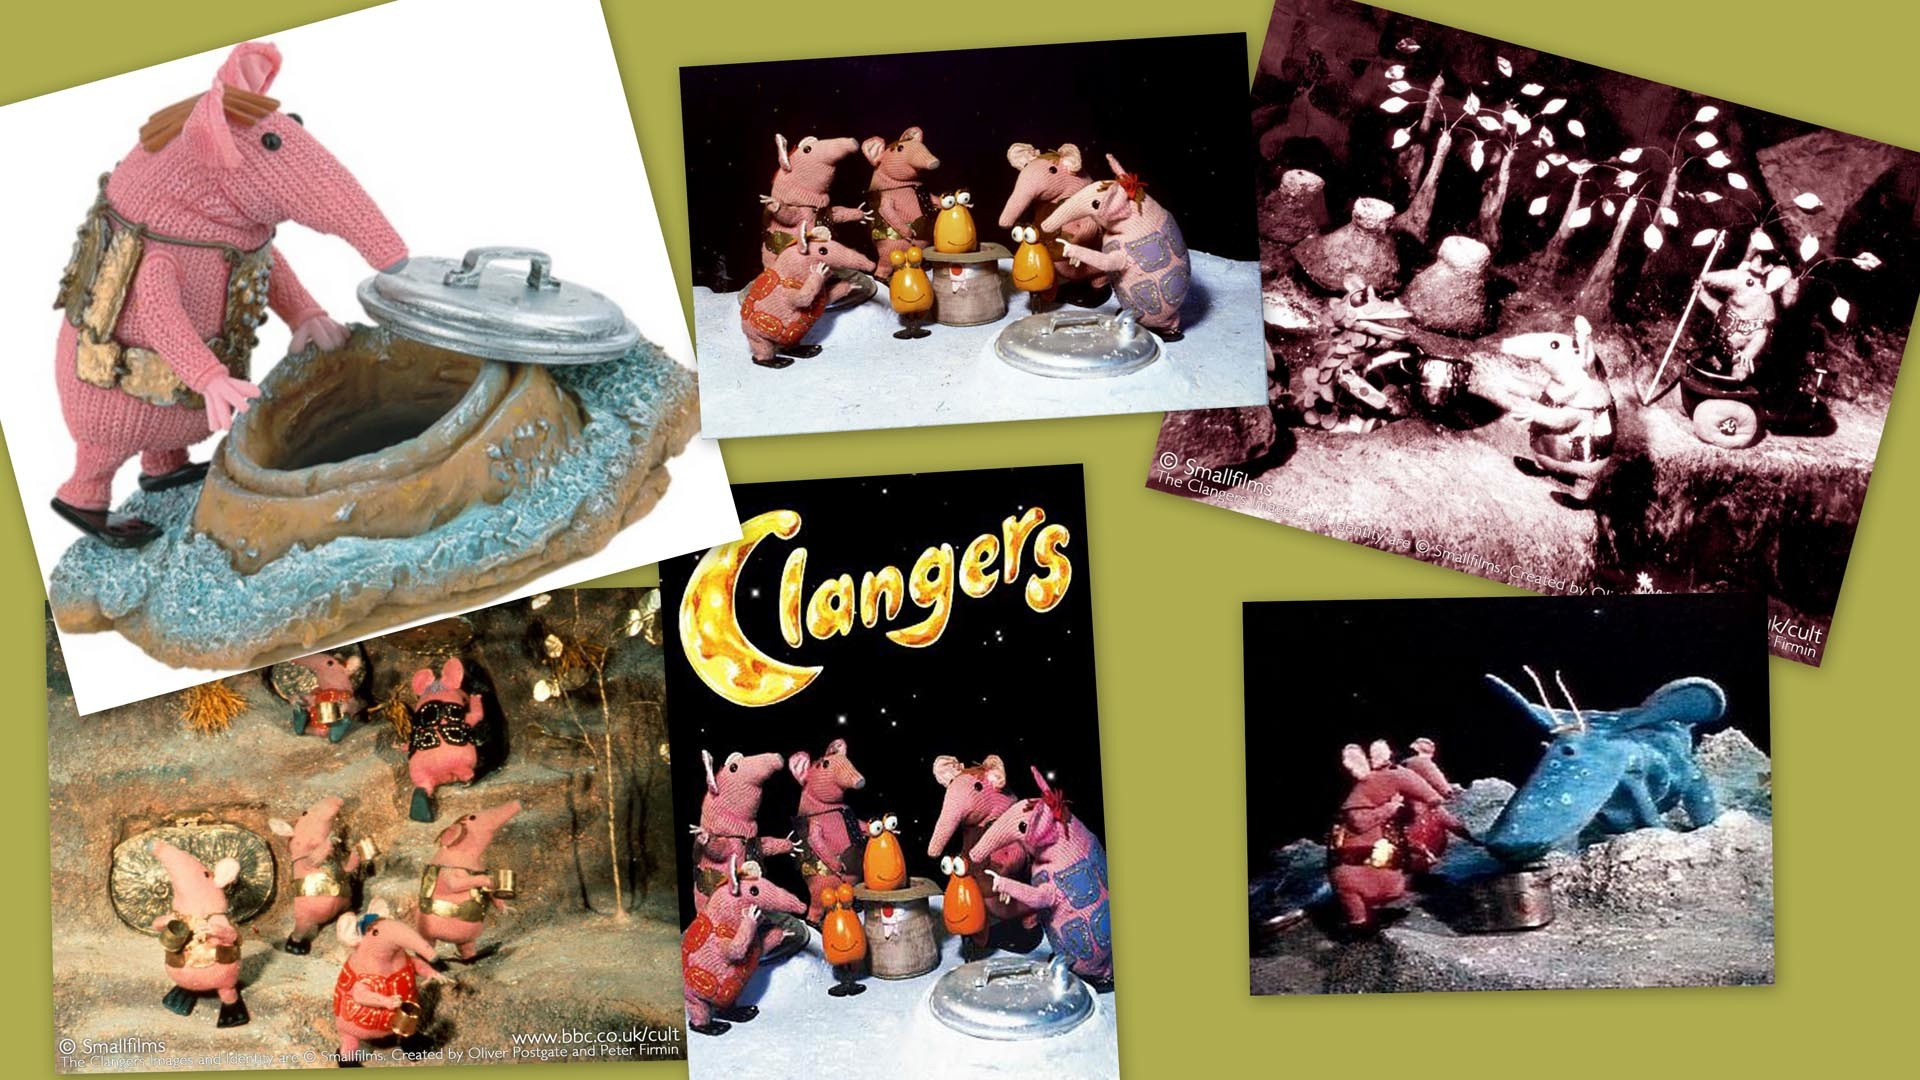 Show Clangers